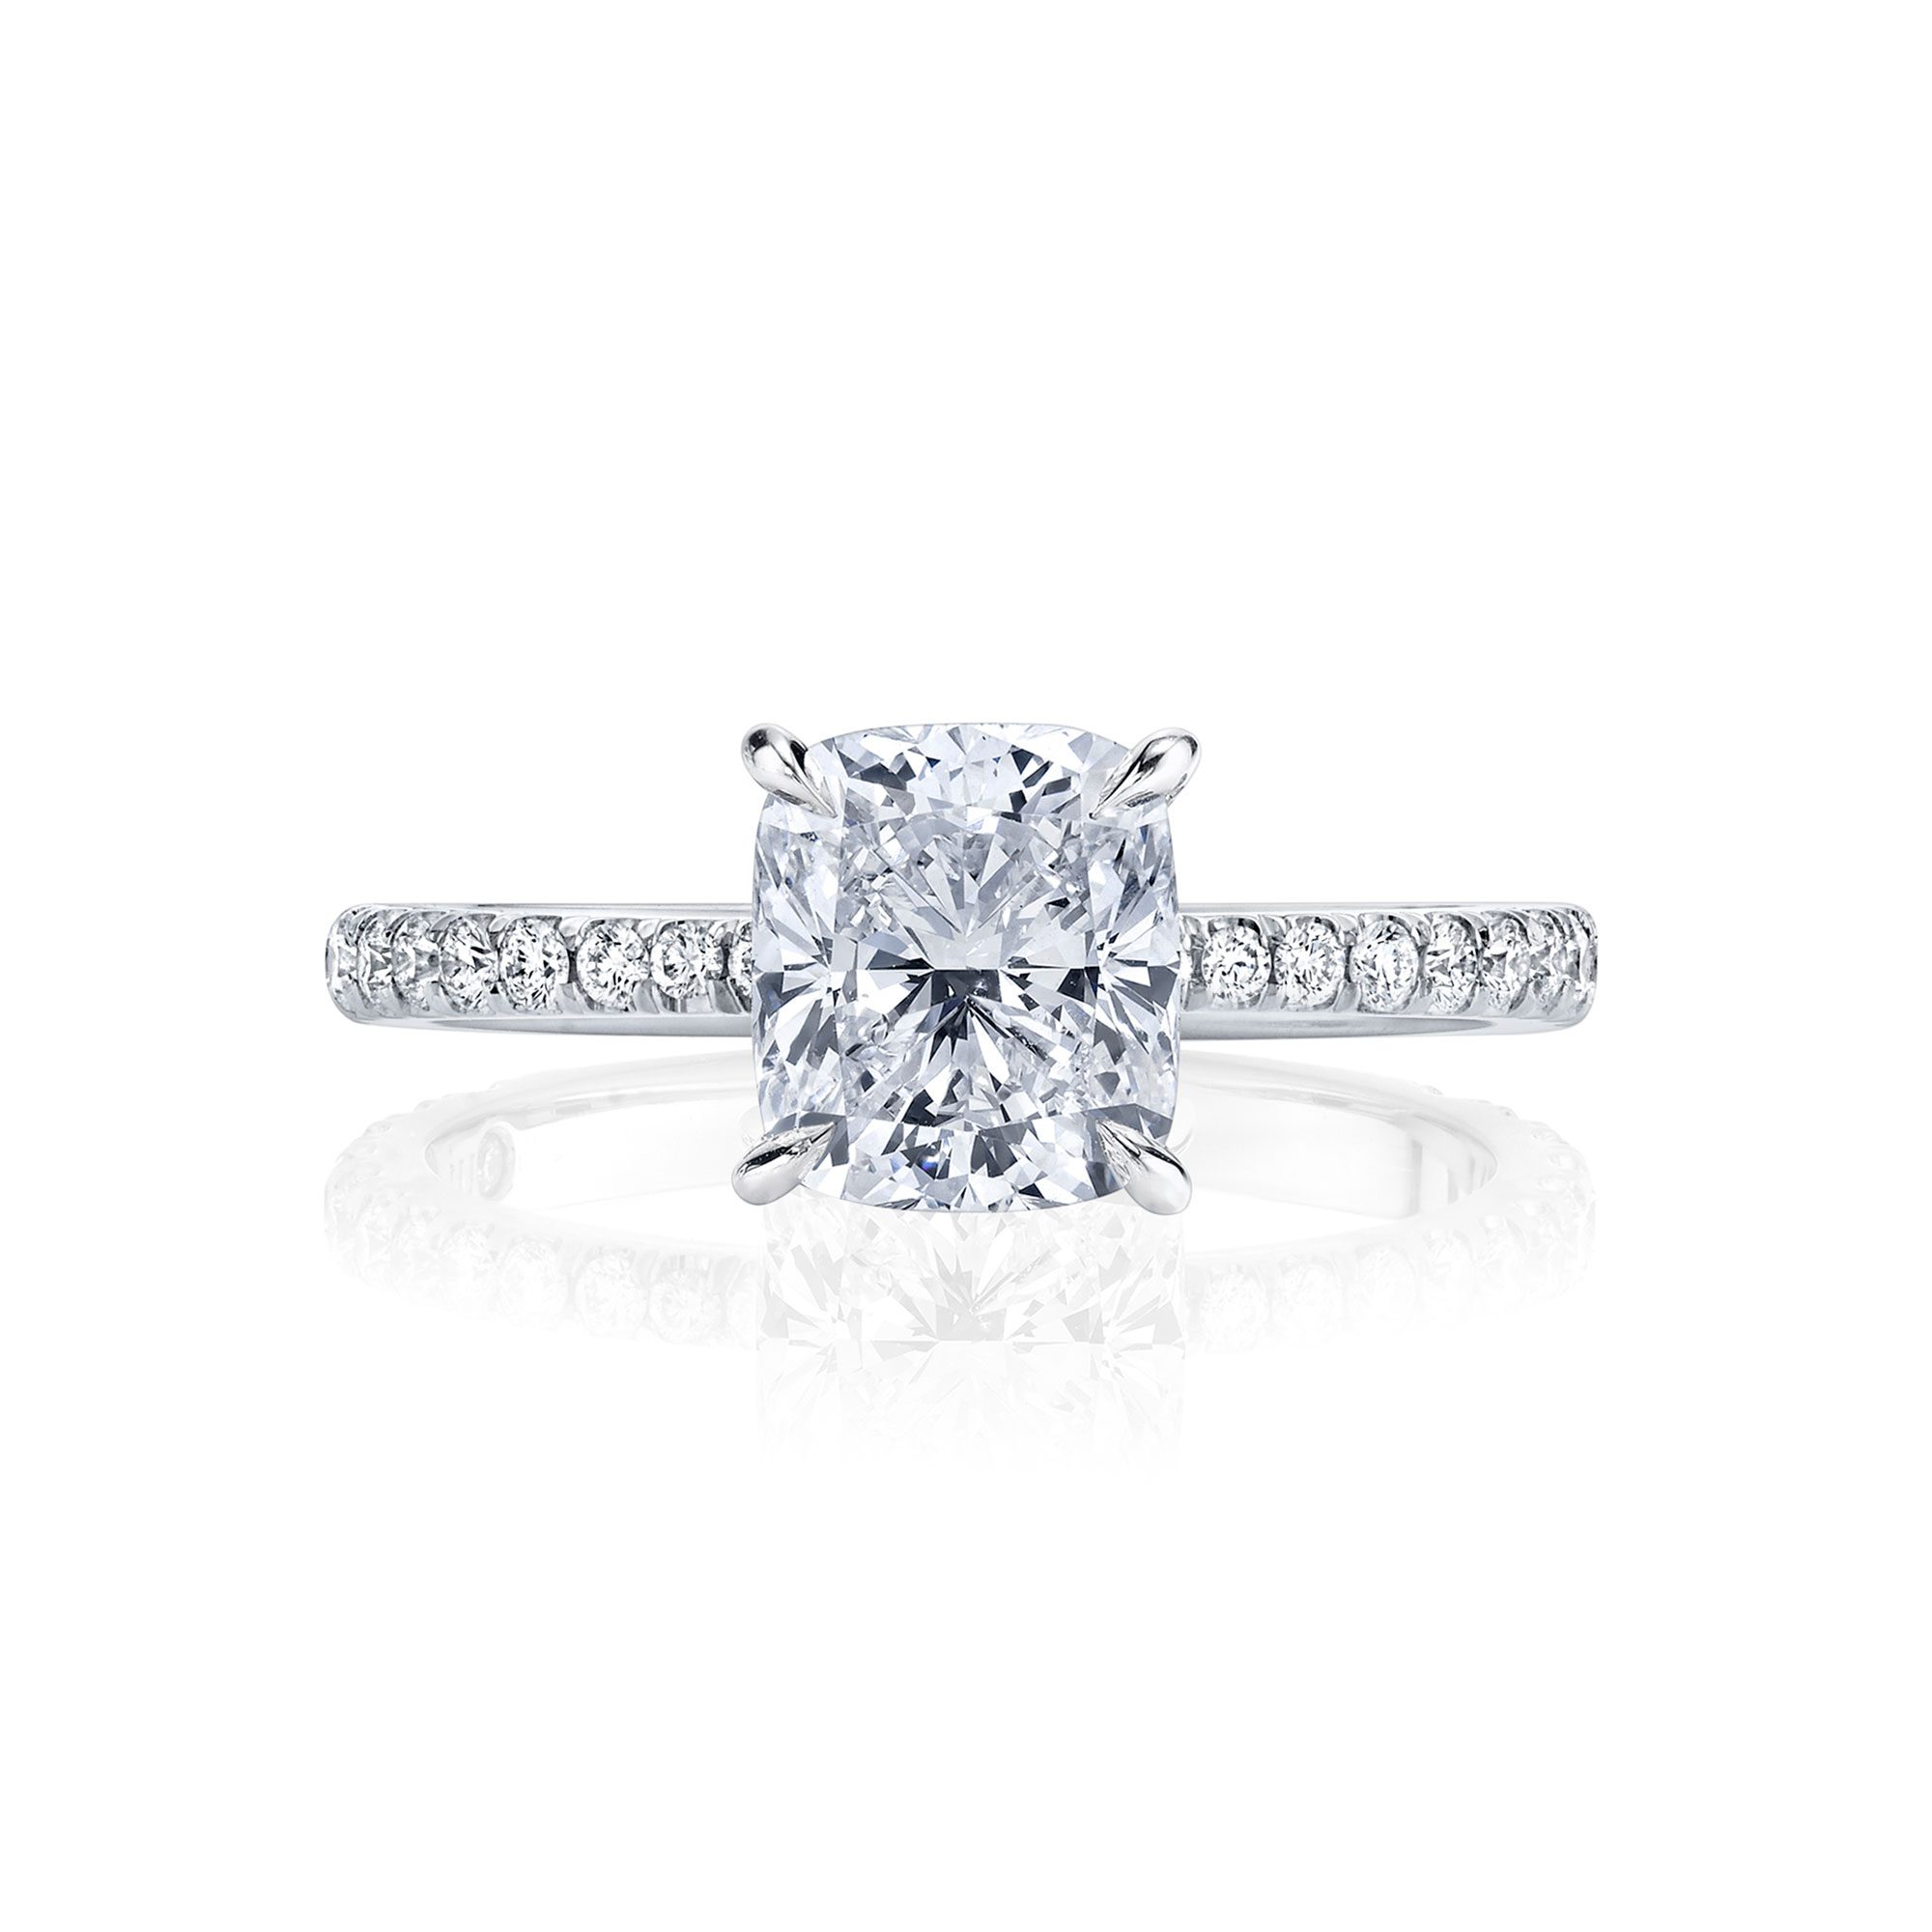 Eloise Cushion Solitaire Engagement Ring with a diamond pavé band in 18k White Gold Front View by Oui by Jean Dousset